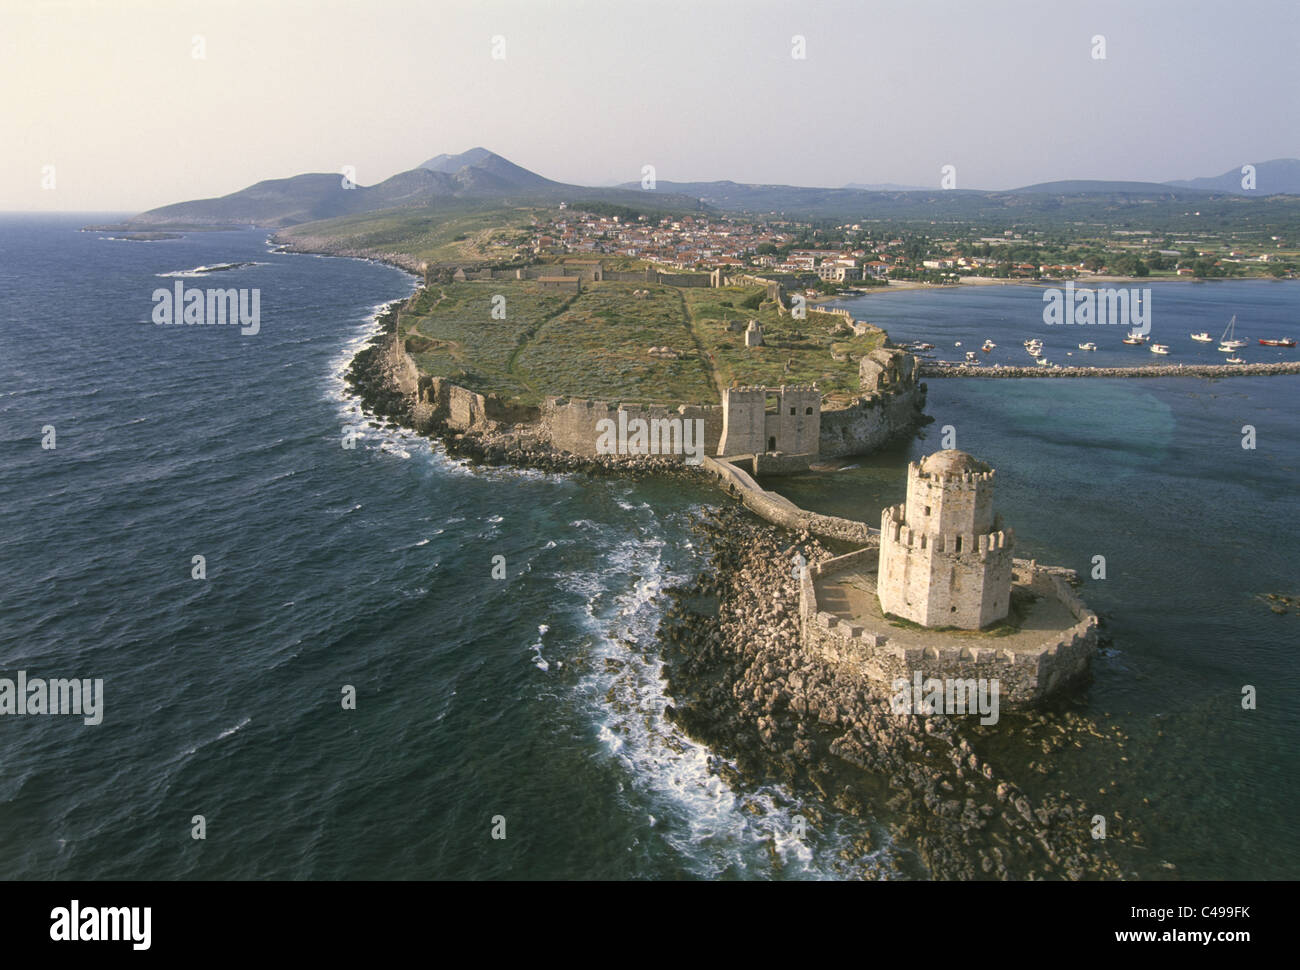 Aerial photograph of the Venetian fortress on the Greek island of Methoni - Stock Image